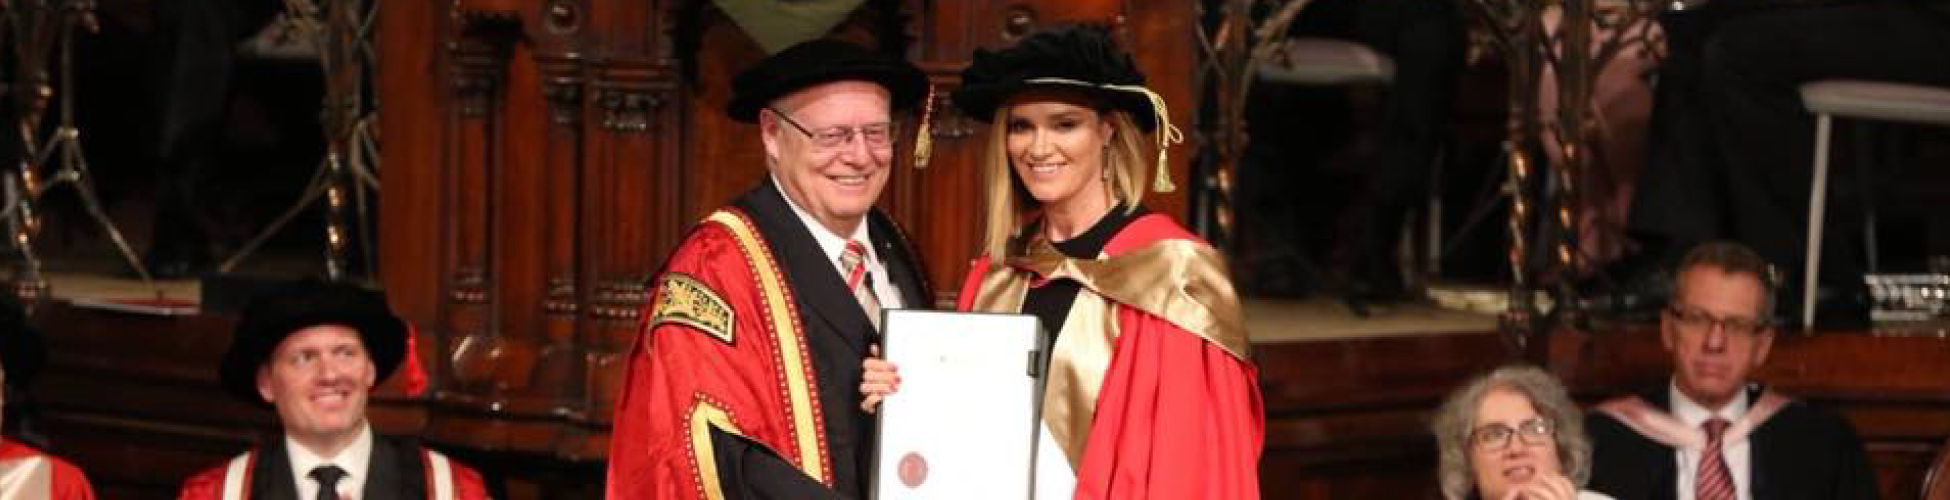 Dr Julia Baird received the Doctor of Divinity (honoris causa) from the Chancellor